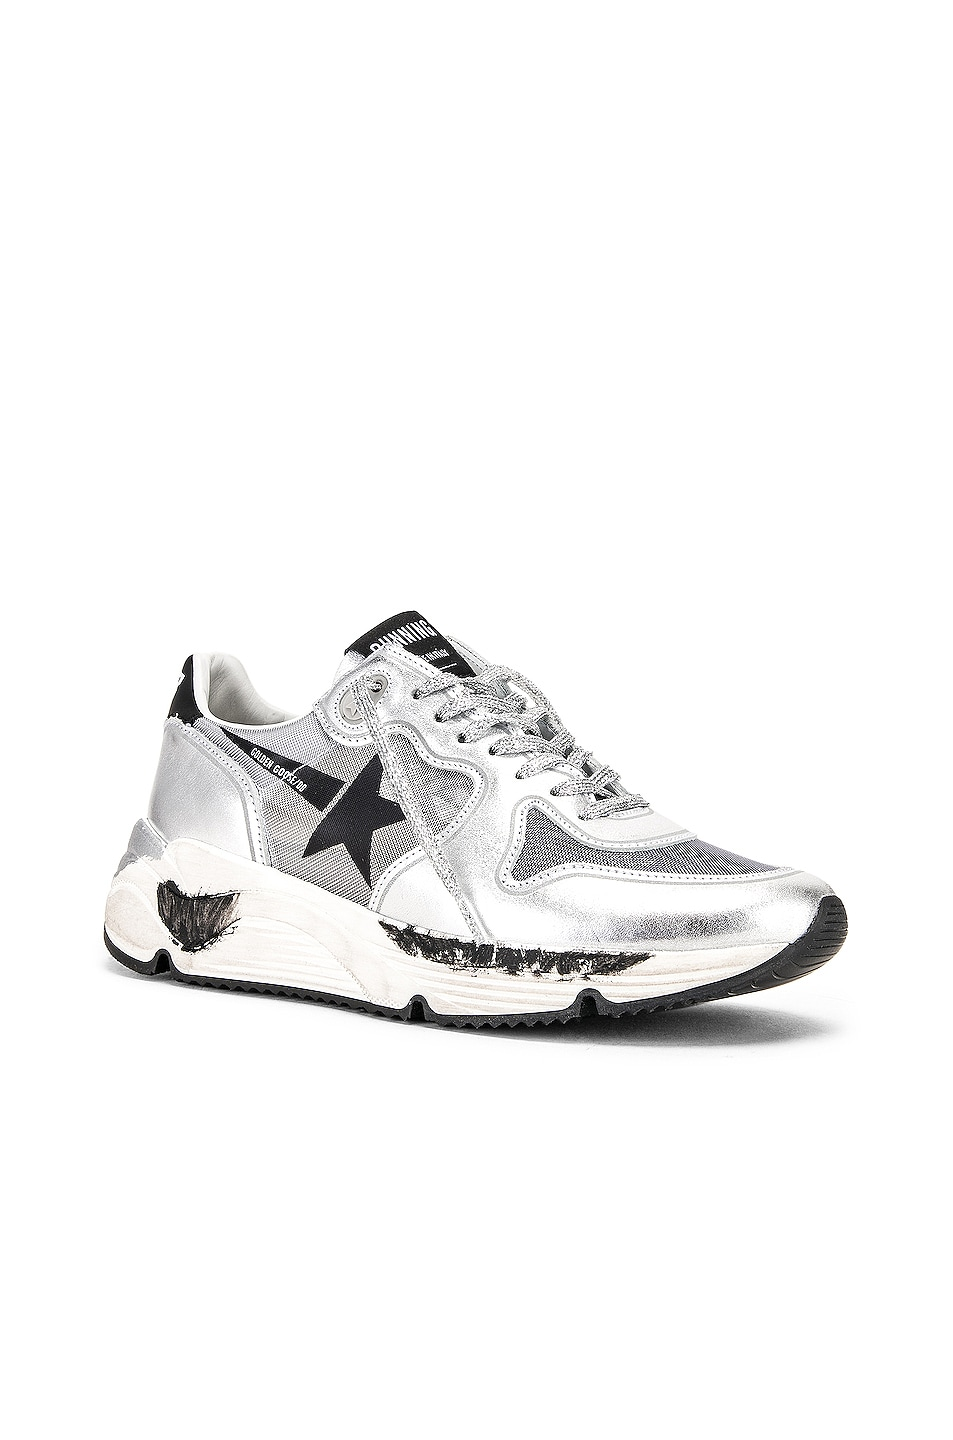 Image 2 of Golden Goose Running Sole Sneakers in Silver Net & Black Star